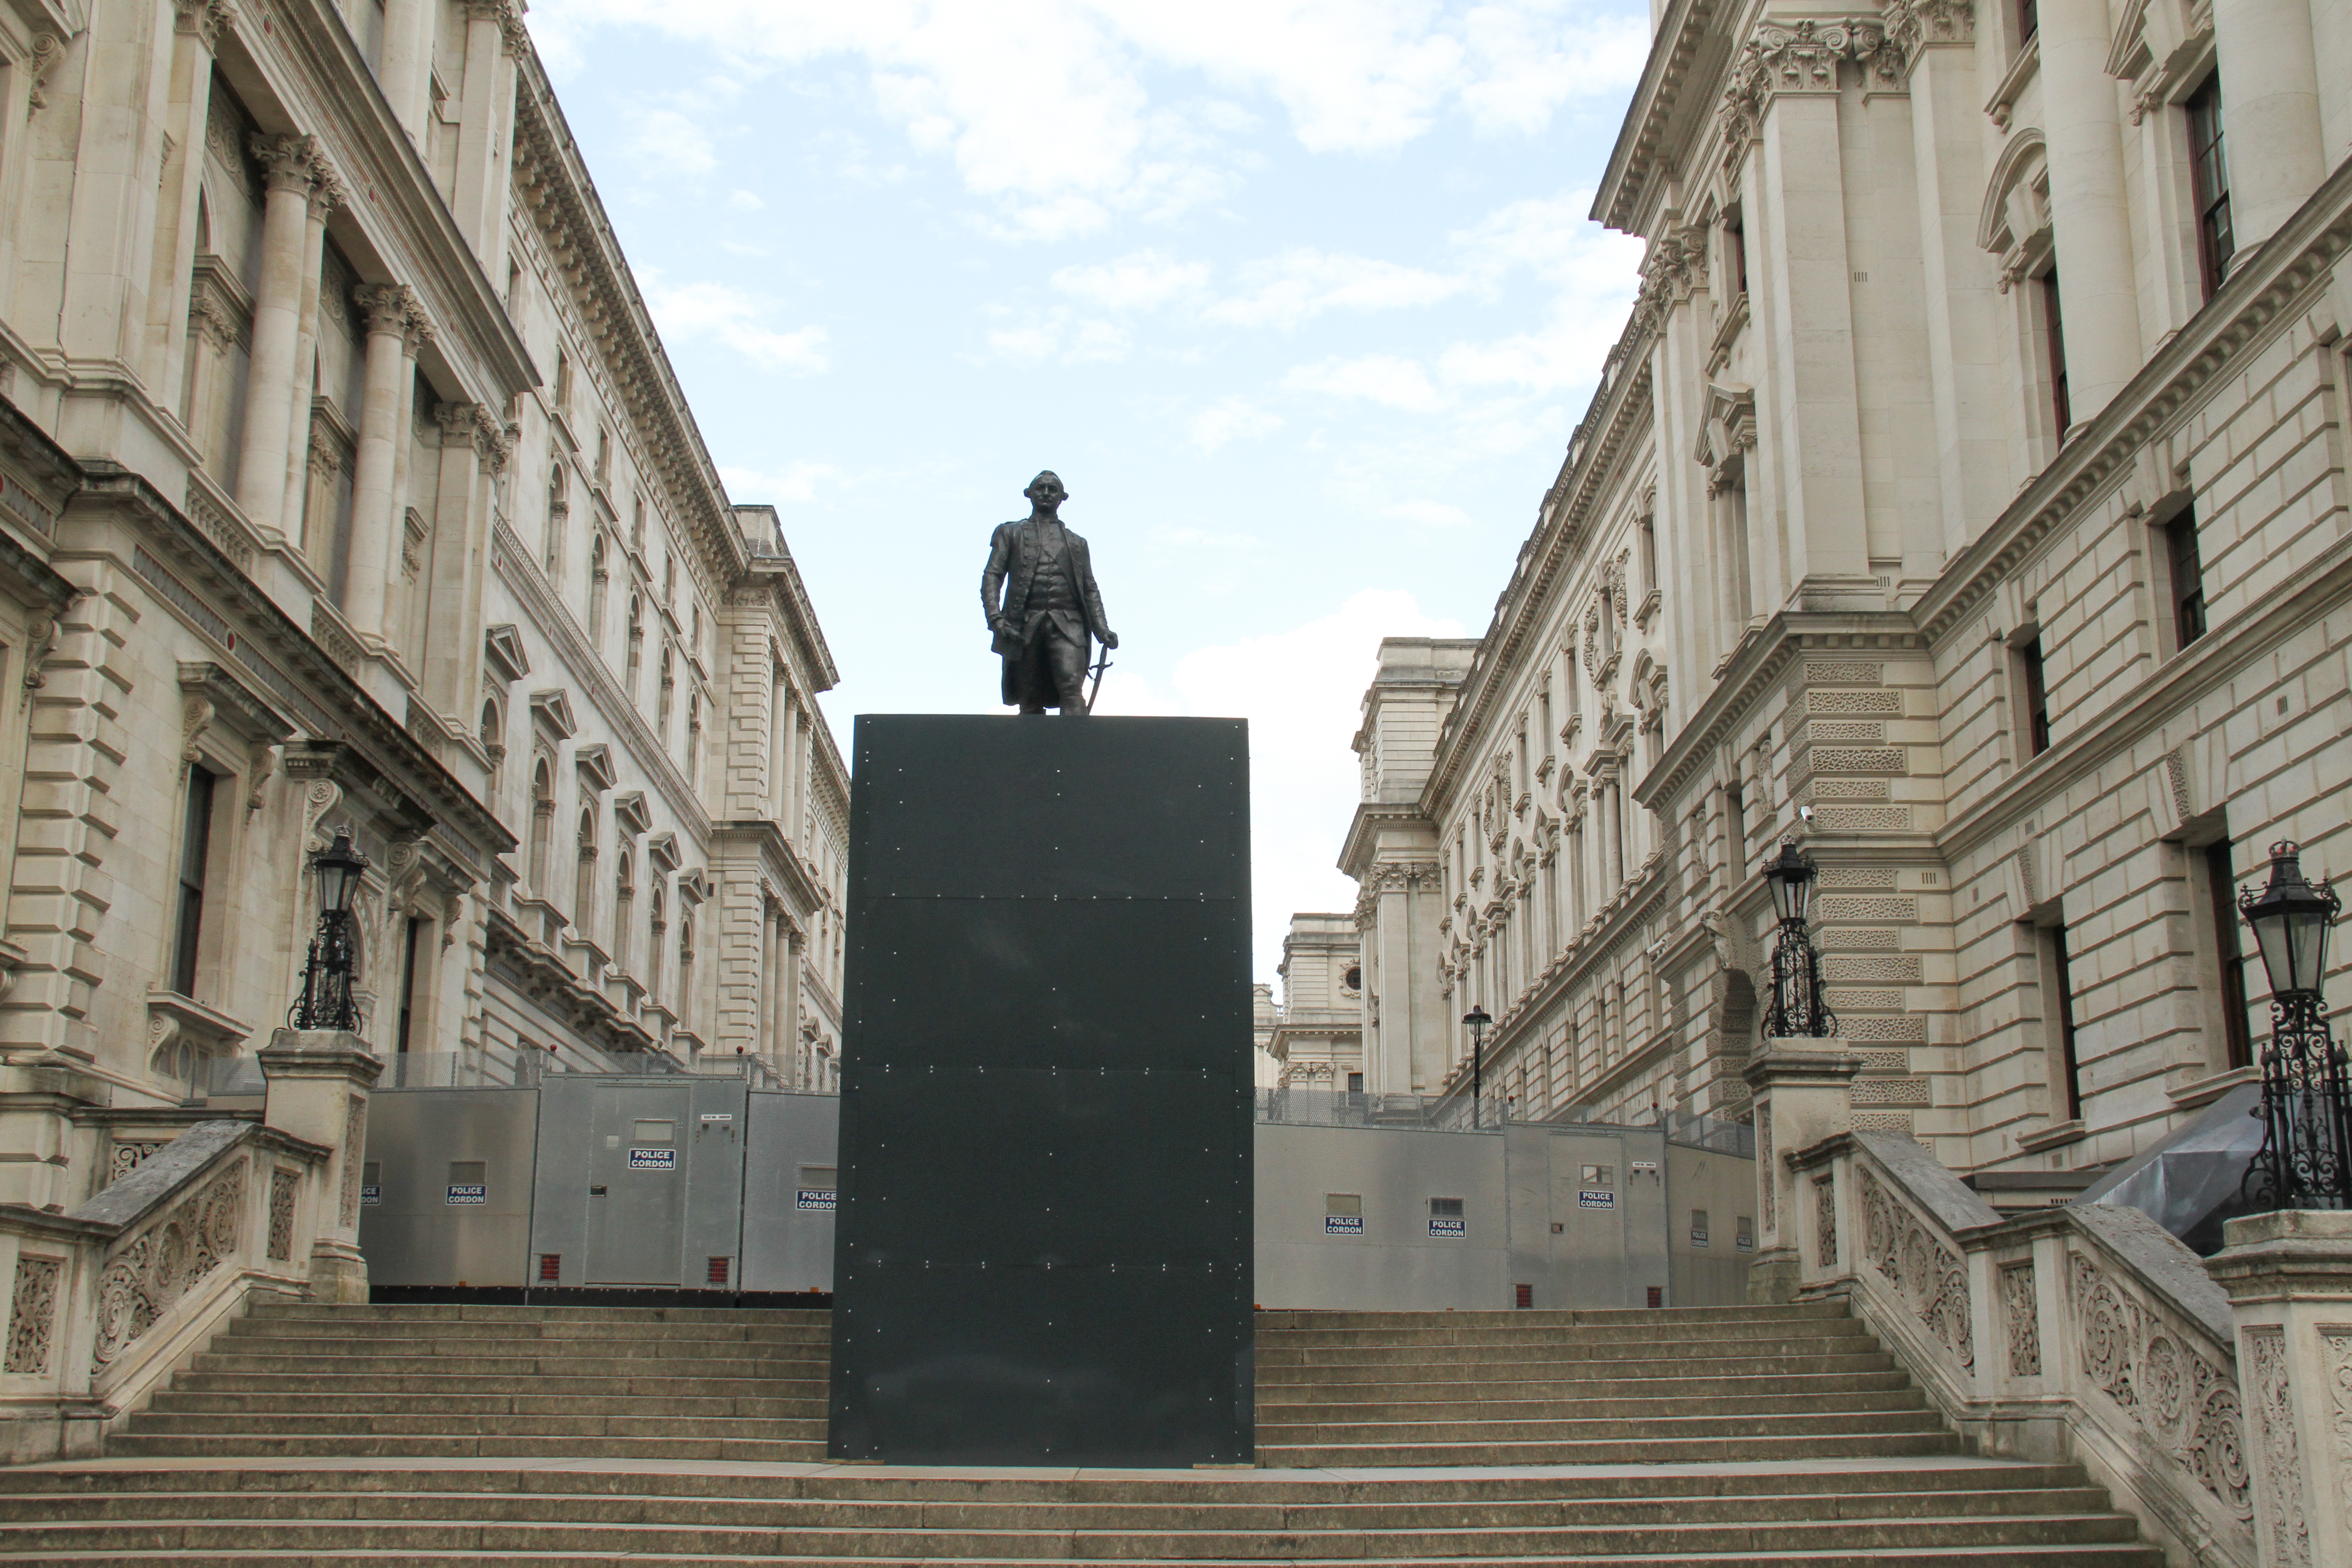 The Statue Robert Clive is boarded up following vandalism from previous demonstration in the City. Clive, the 1st Baron Clive better know as Clive of India, who established British rule in India stands outside the Foreign Office. Clive was first Governor of Bengal Presidency under the East India Company. Authorities boarded monuments and statues in London most due to their past linkage to slavery in anticipation of possible vandalism with far-right organisations and Black Lives Matter demonstration scheduled for this weekend. (Photo by David Mbiyu / SOPA Images/Sipa USA)